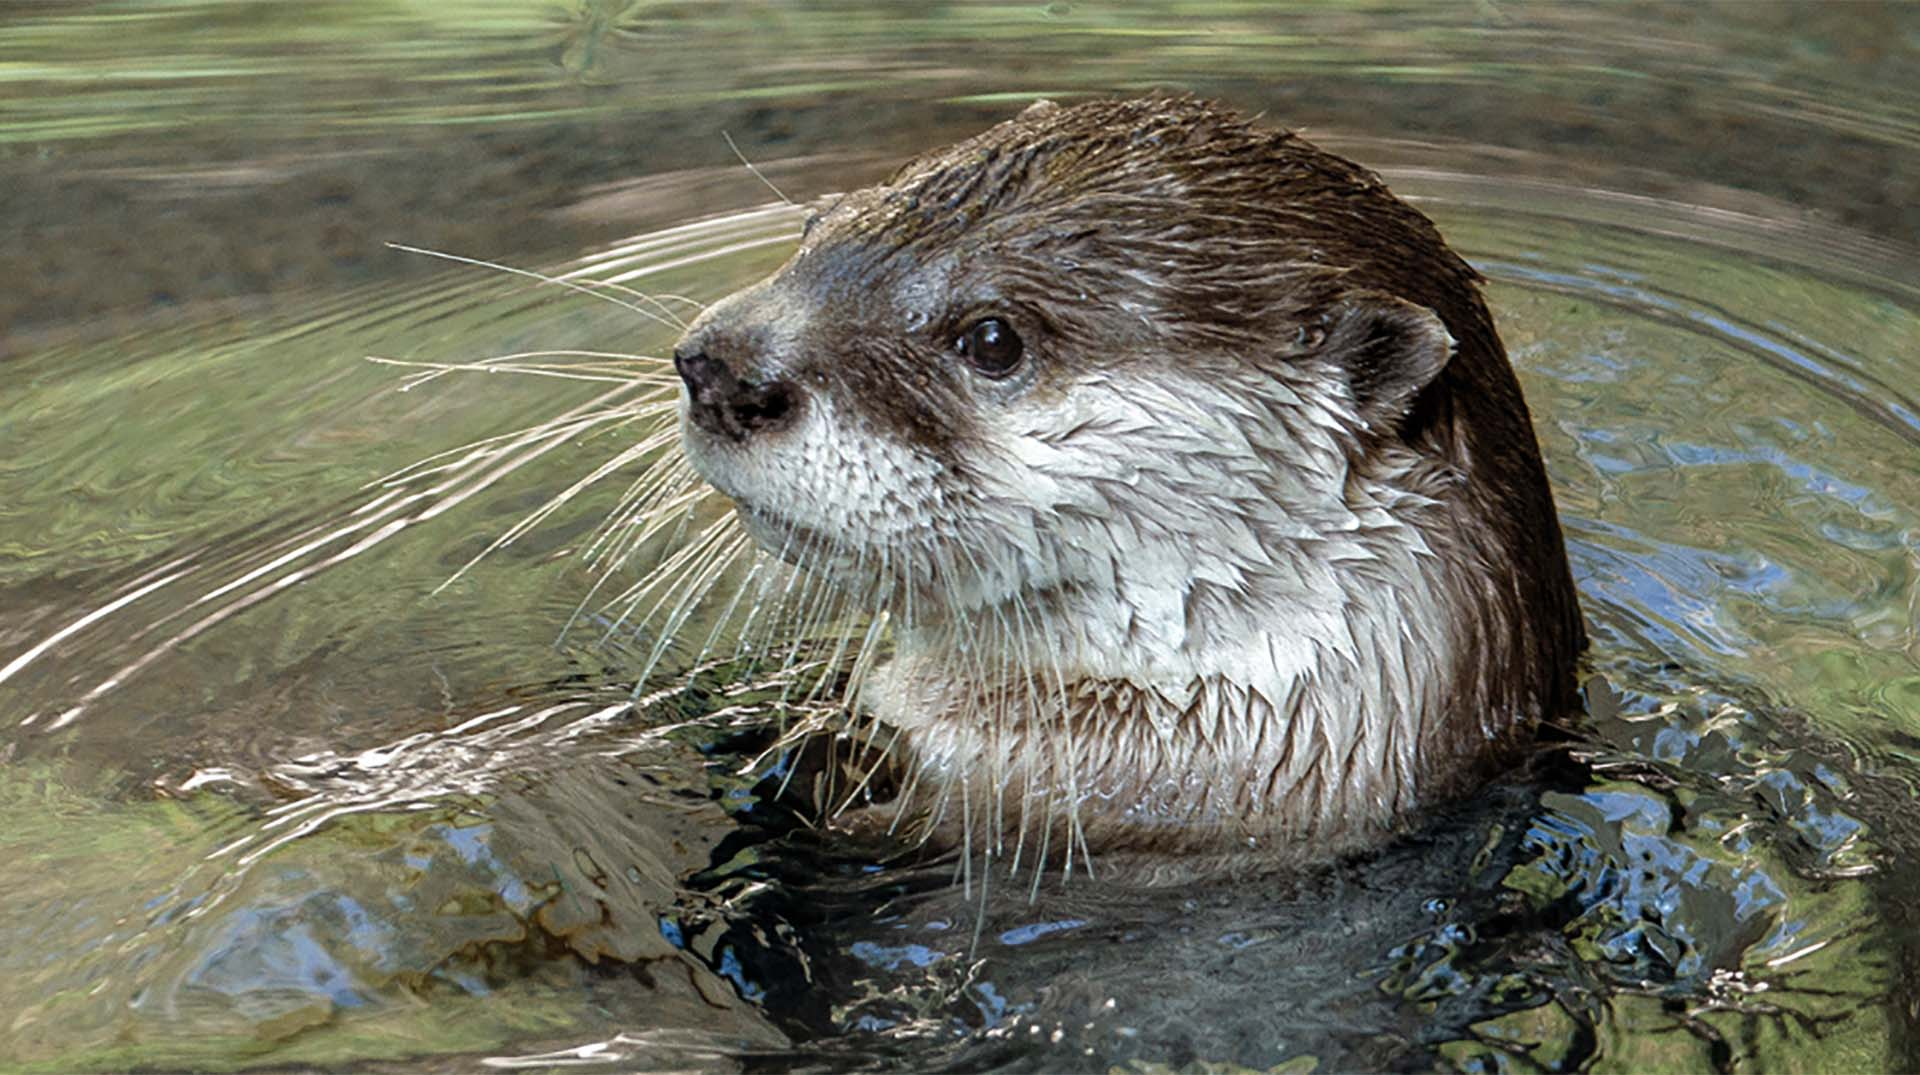 An otter at the Zoo with its head peeking out of the water.